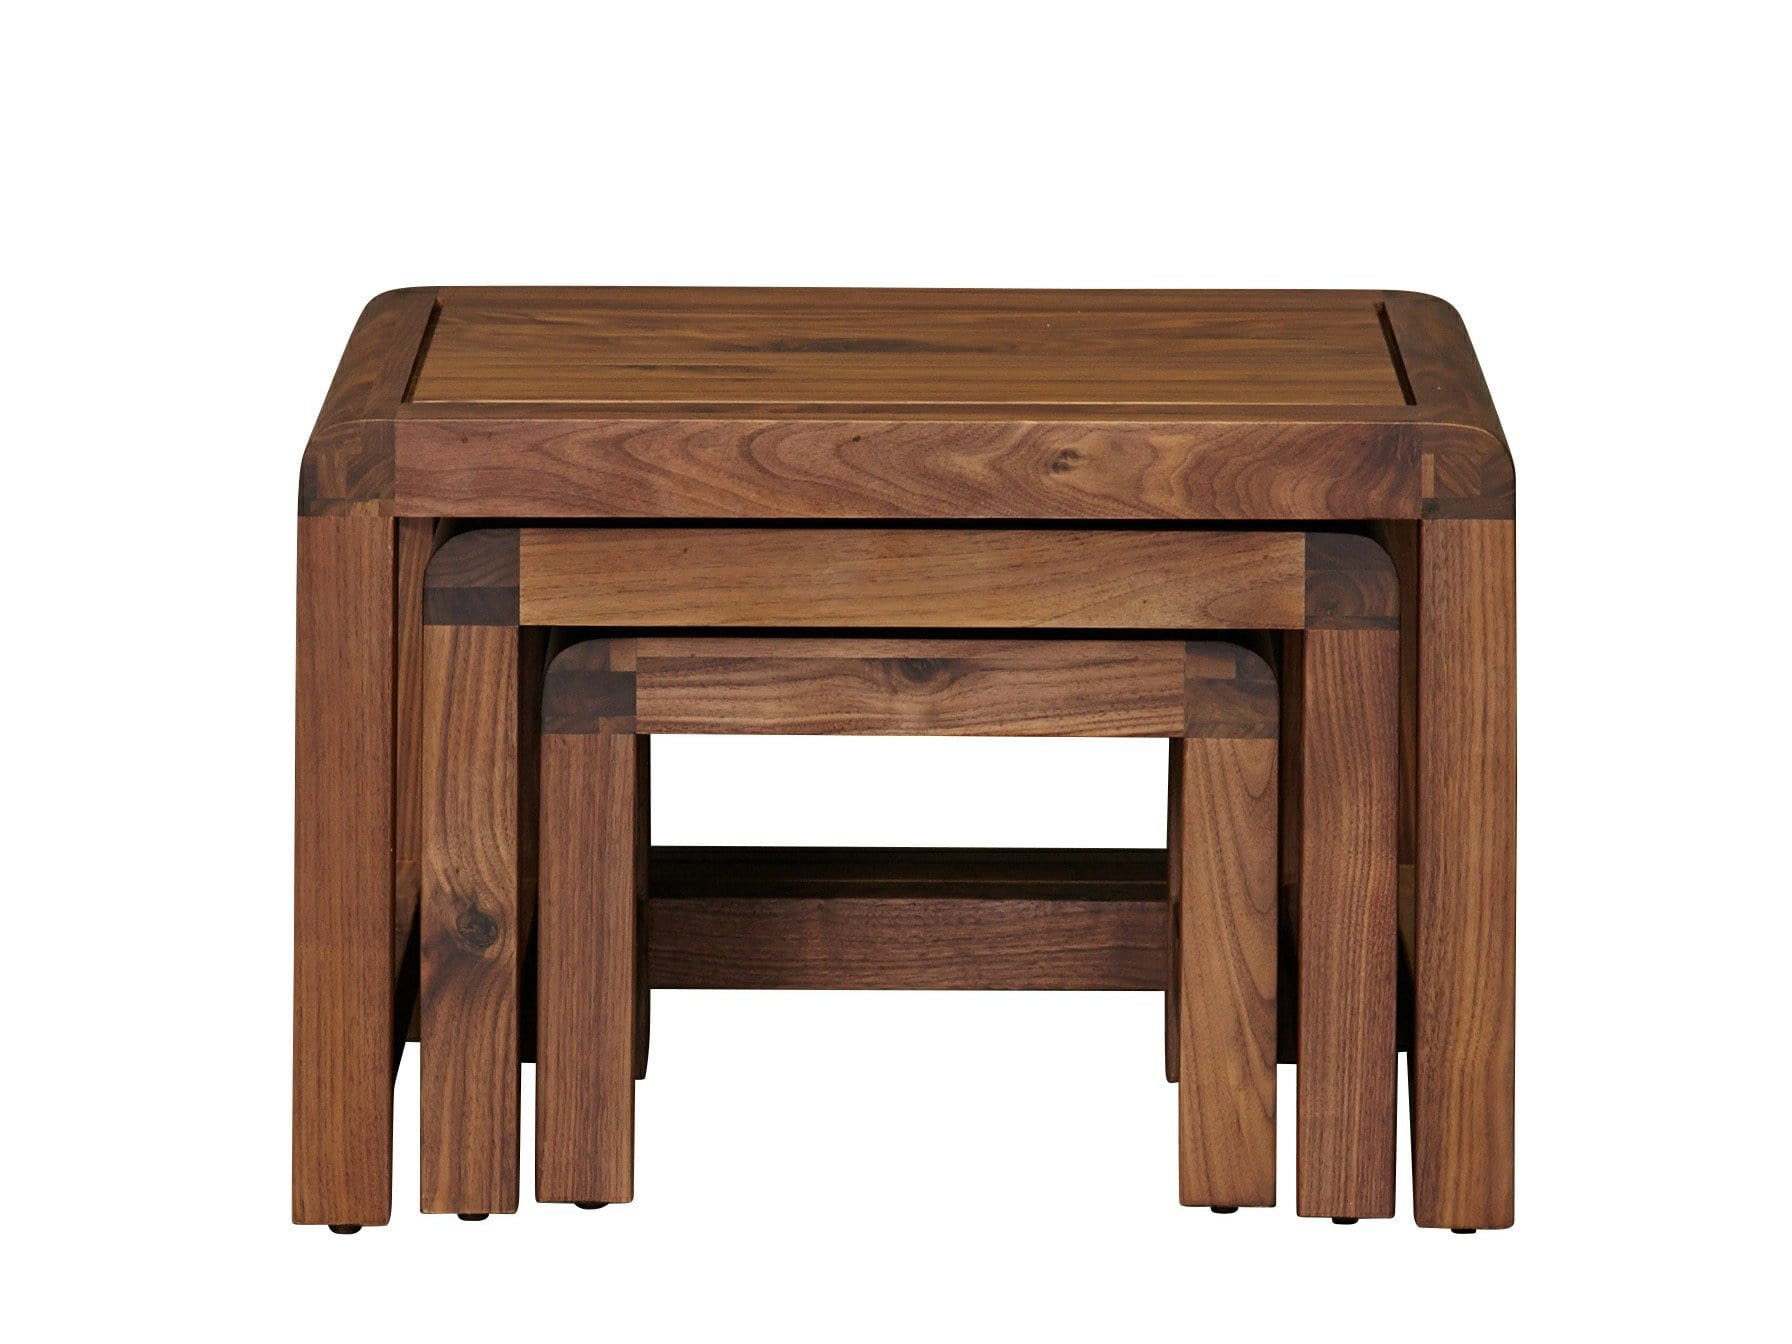 Contemporary style nest of tables in dark wood